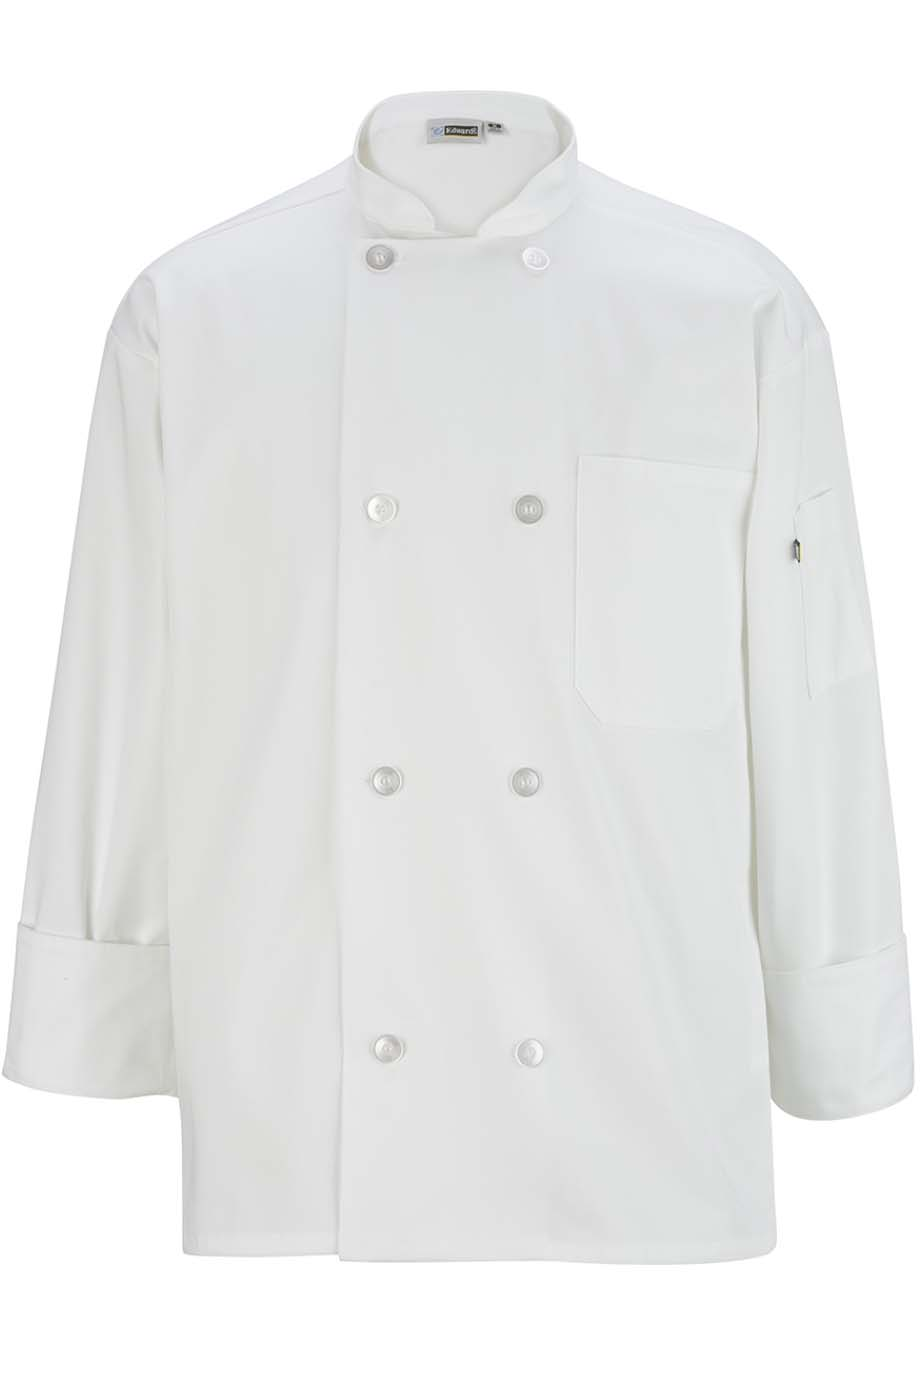 CASUAL CHEF COAT - 8-BUTTON